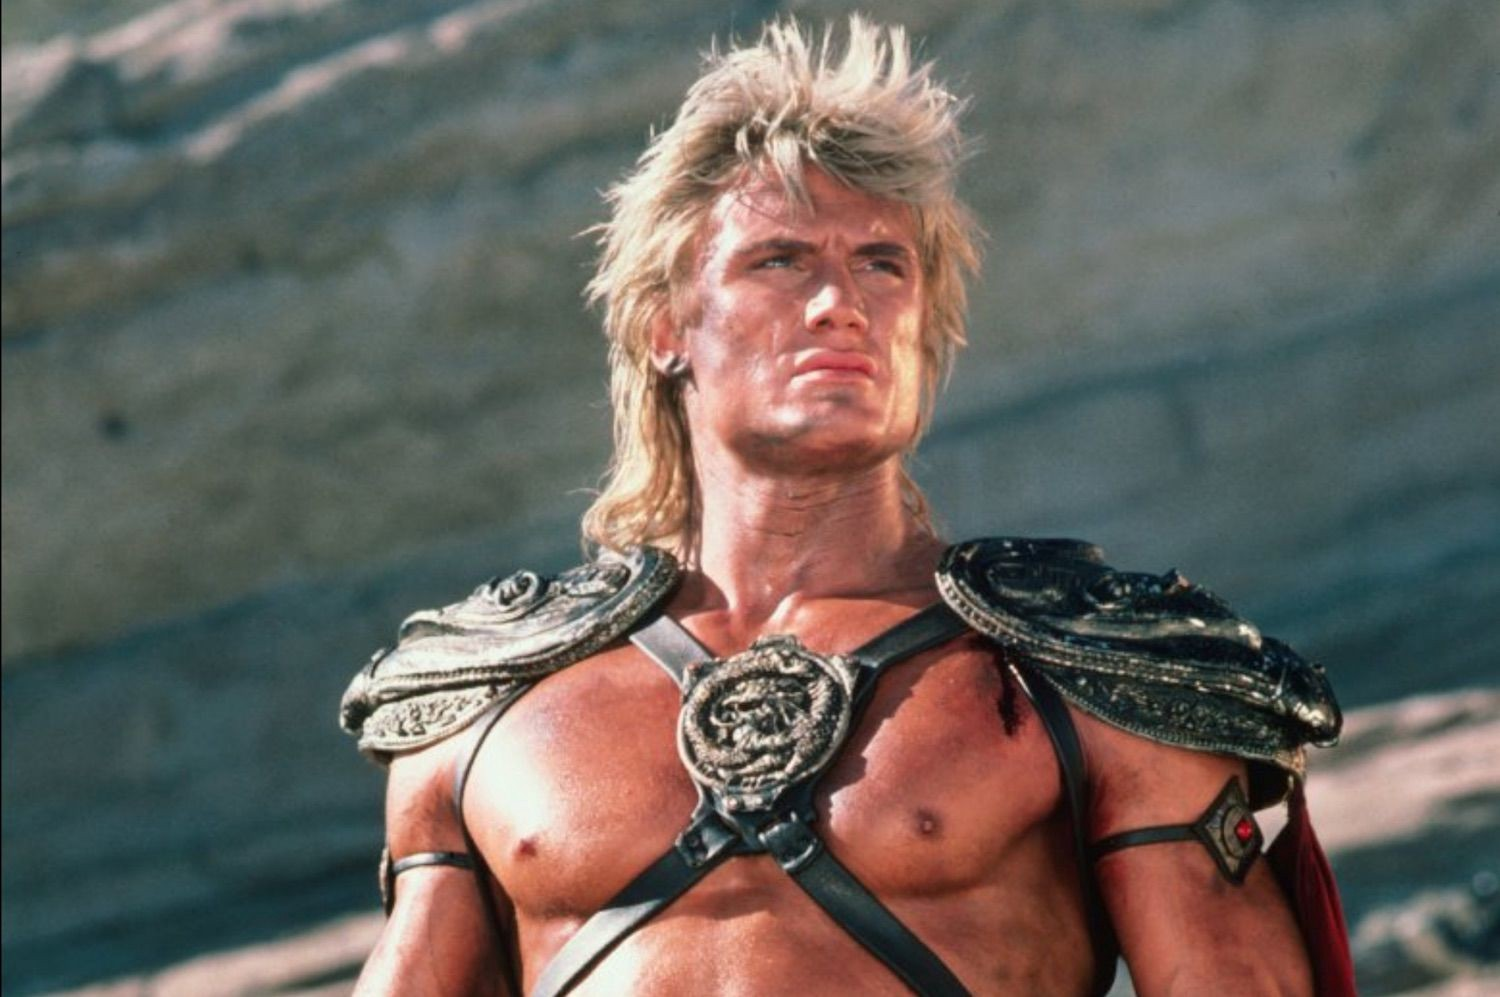 16a 25 Things You Probably Didn't Know About Action Movie Legend Dolph Lundgren